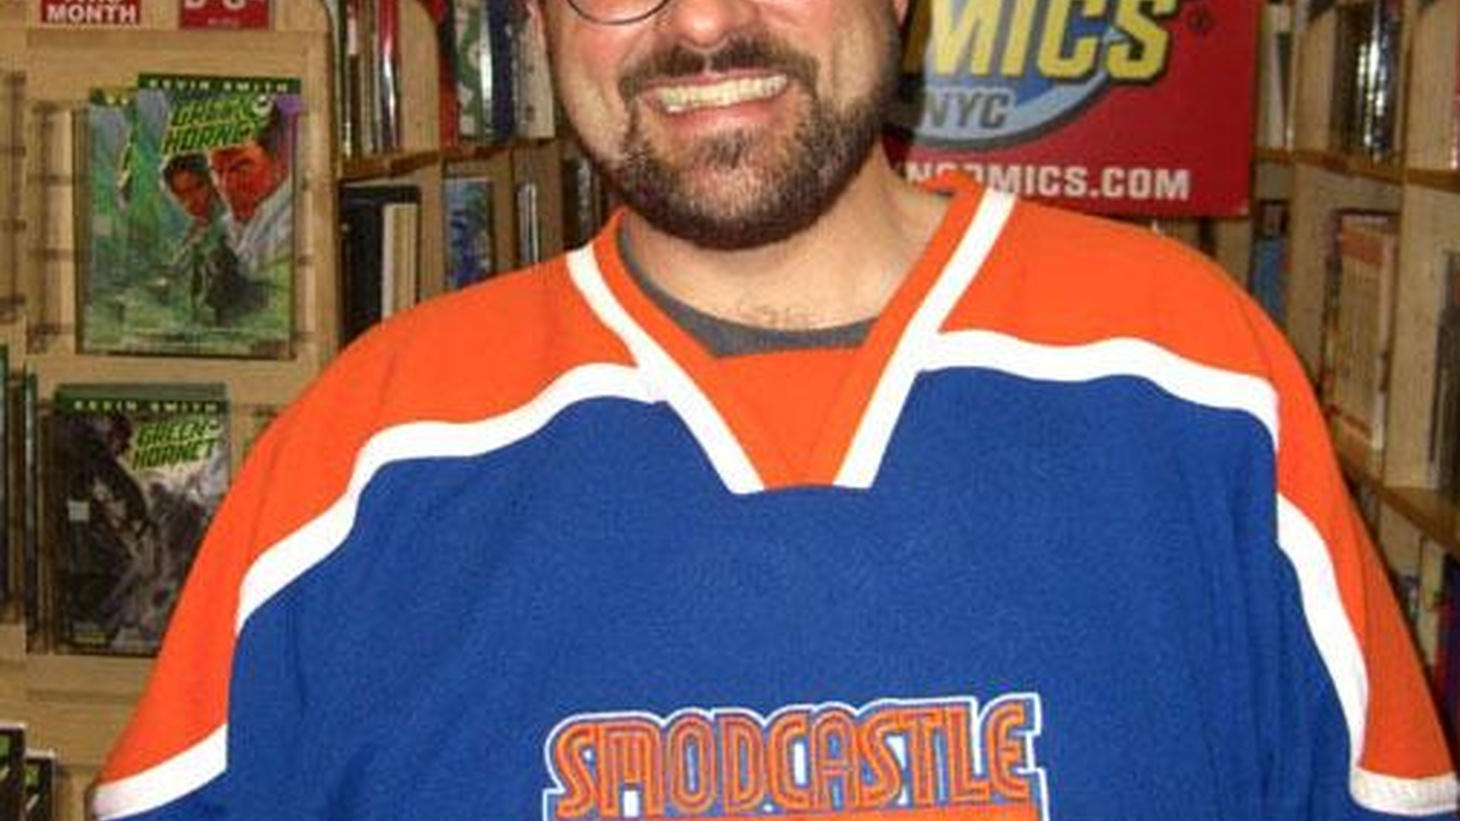 Inspired to become a filmmaker by the film Slacker, Kevin Smith celebrated his 20th year in filmmaking by making the horror film Red State and announcing his retirement...